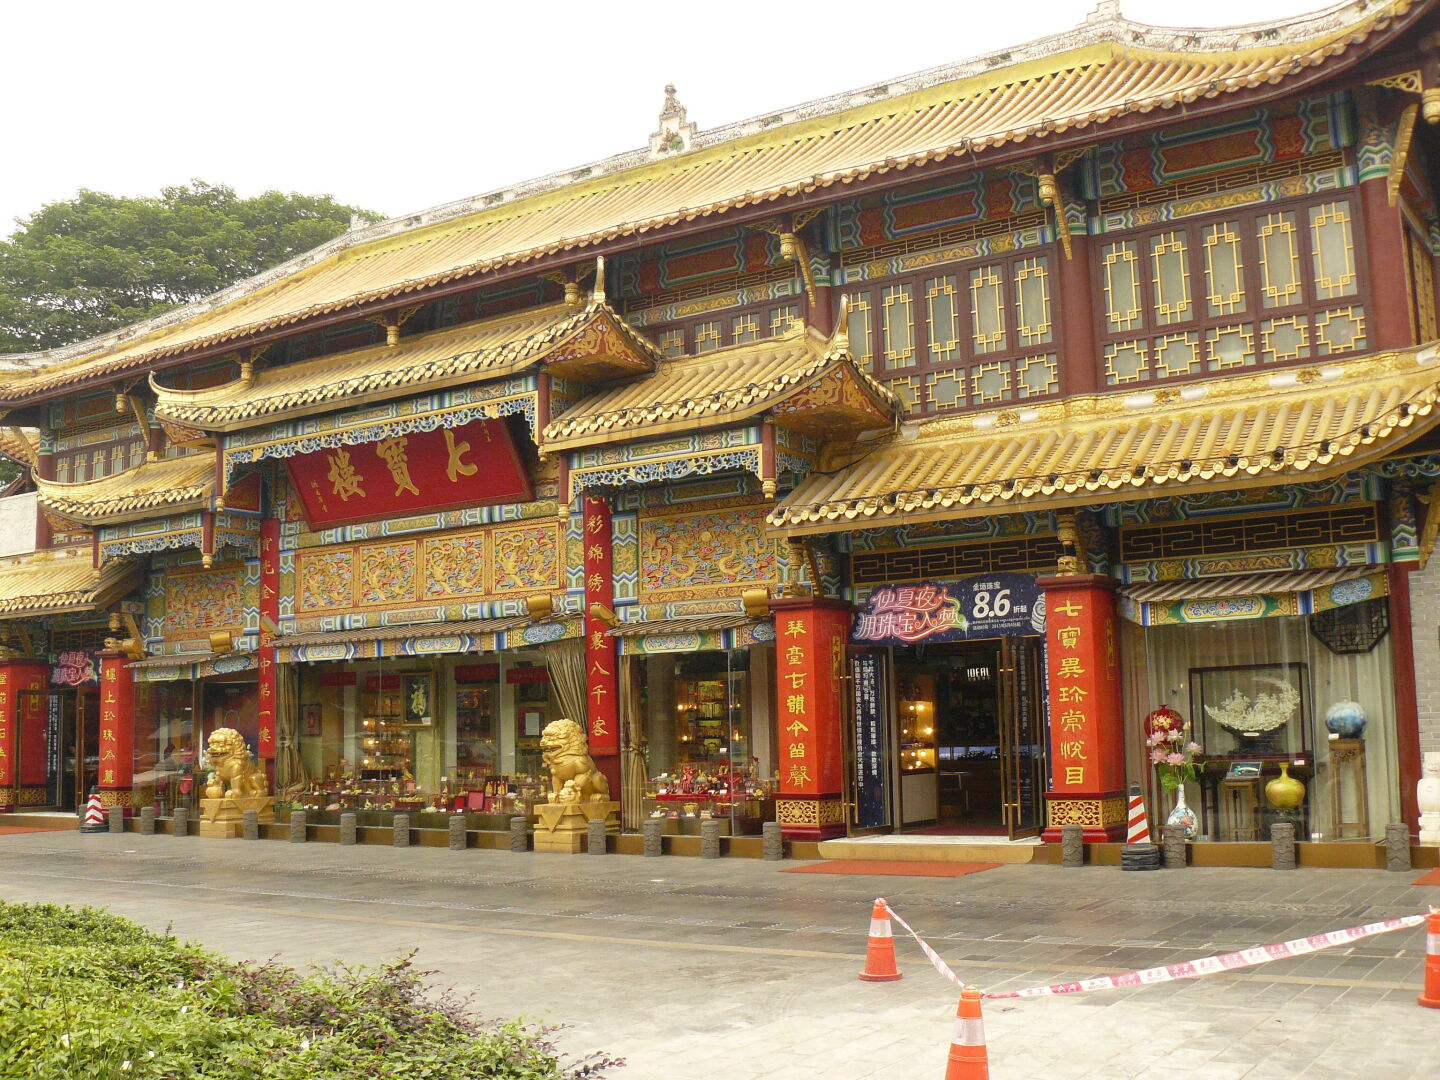 Qintai Road is full of richly decorated buildings, most of which contain jewellery shops or expensive-looking restaurants.